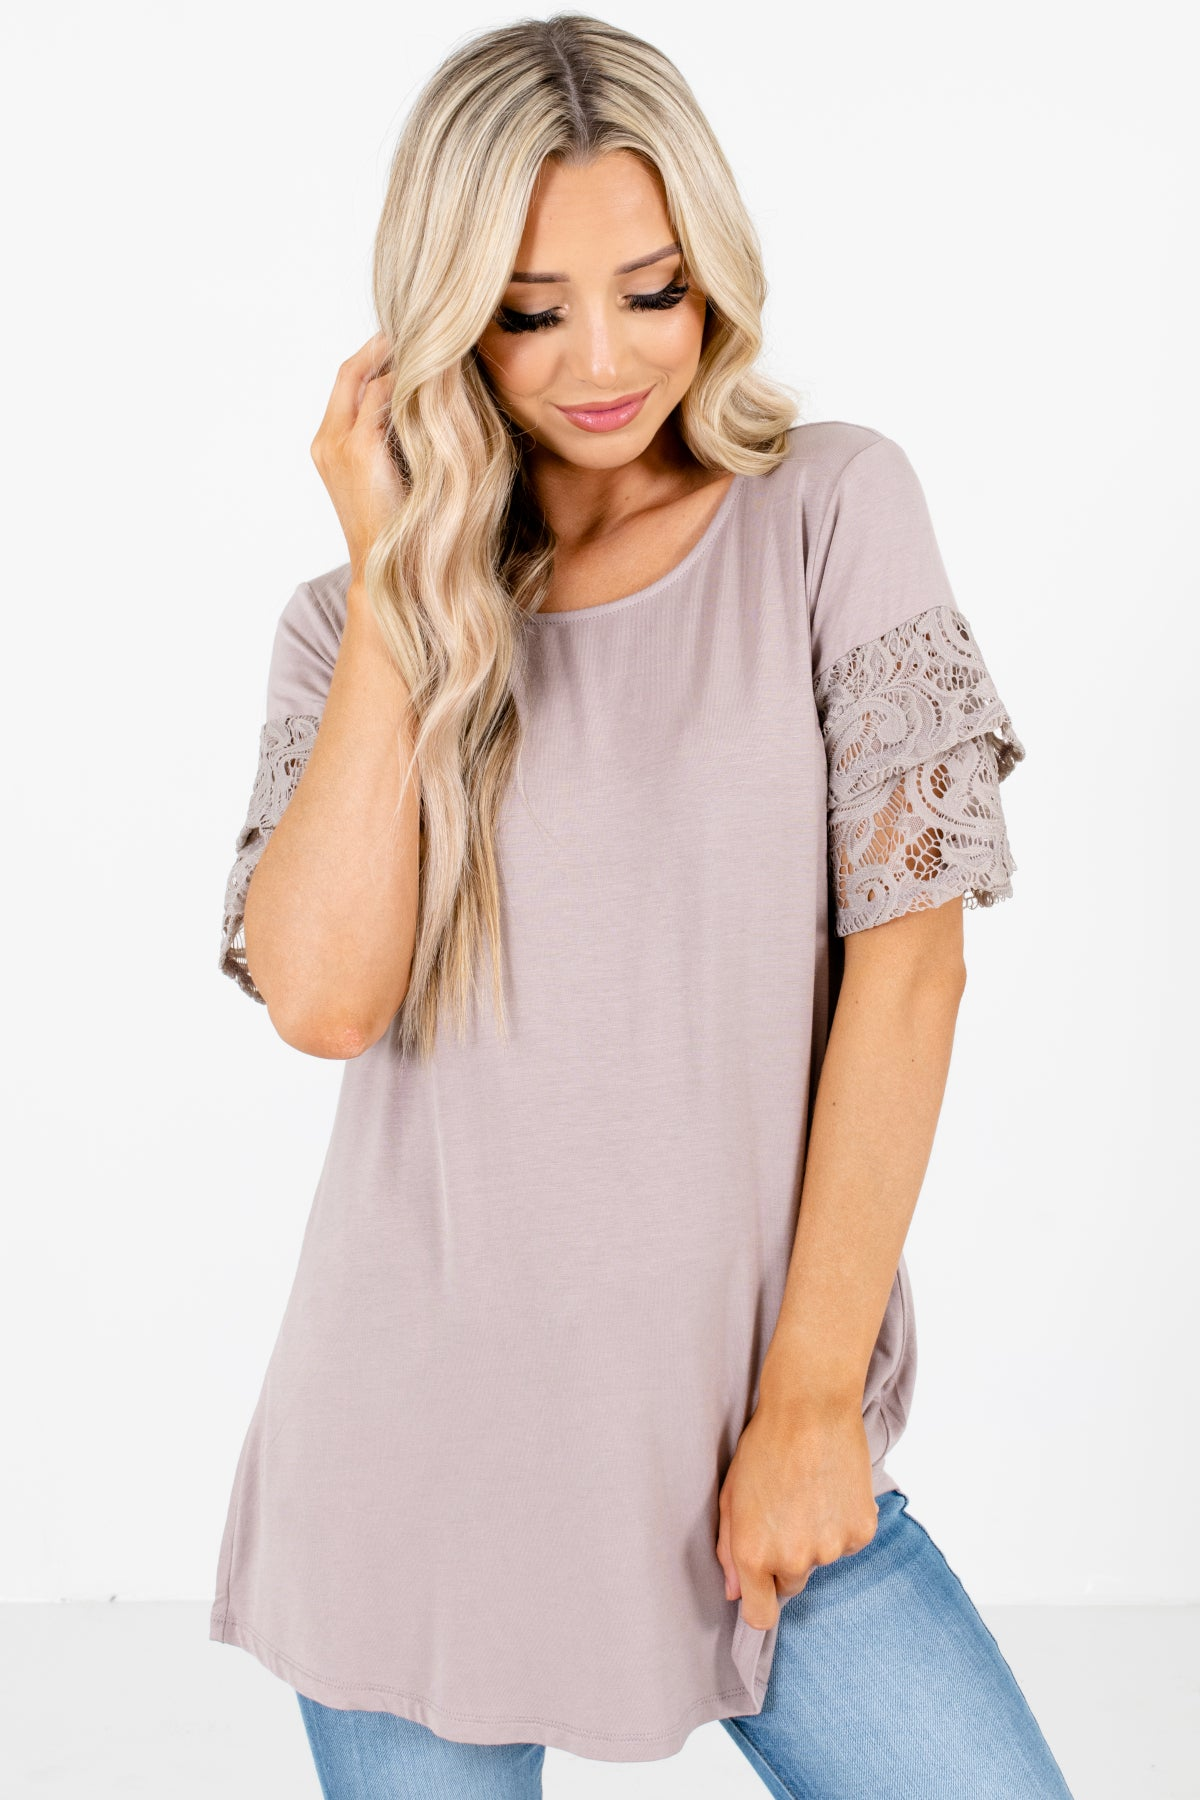 Brown Lace Sleeve Boutique Tops for Women